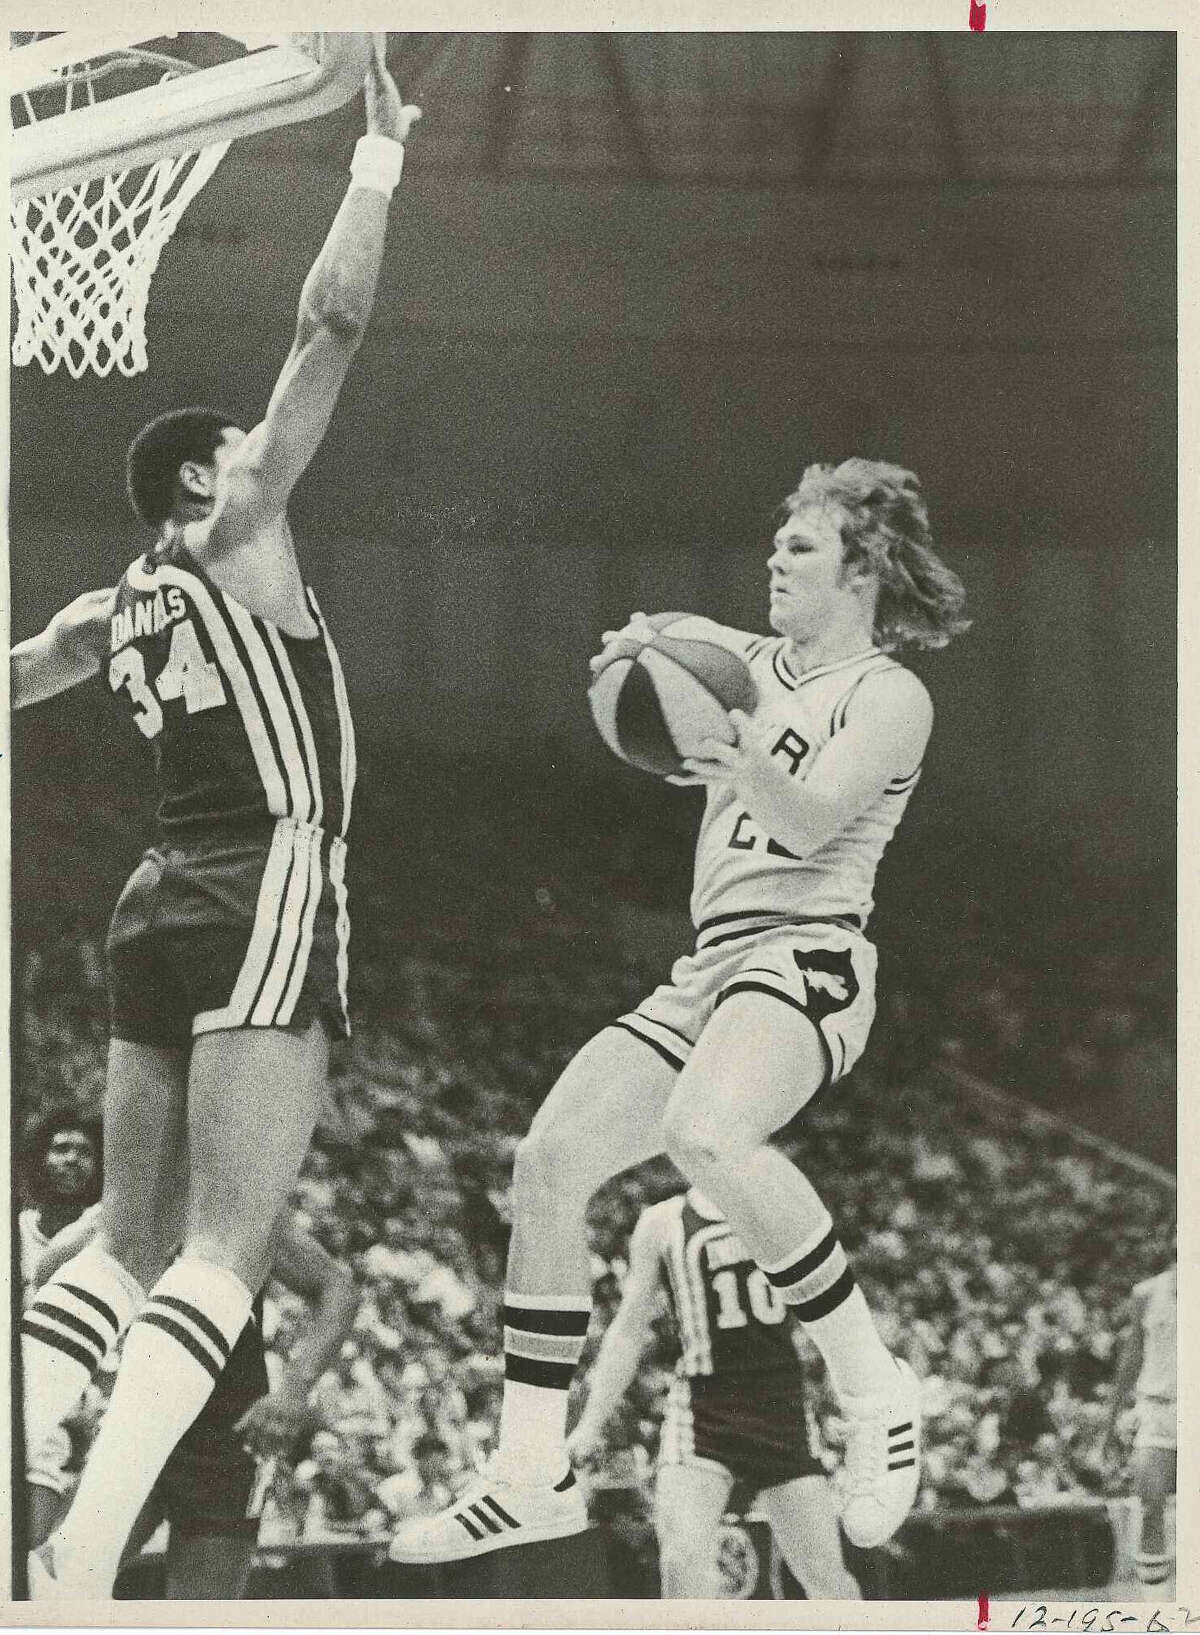 The genesis of the San Antonio Spurs dates back nearly 47-years-ago to this day when the Silver and Black played their first American Basketball Association game in the Alamo City at what would one day become known as